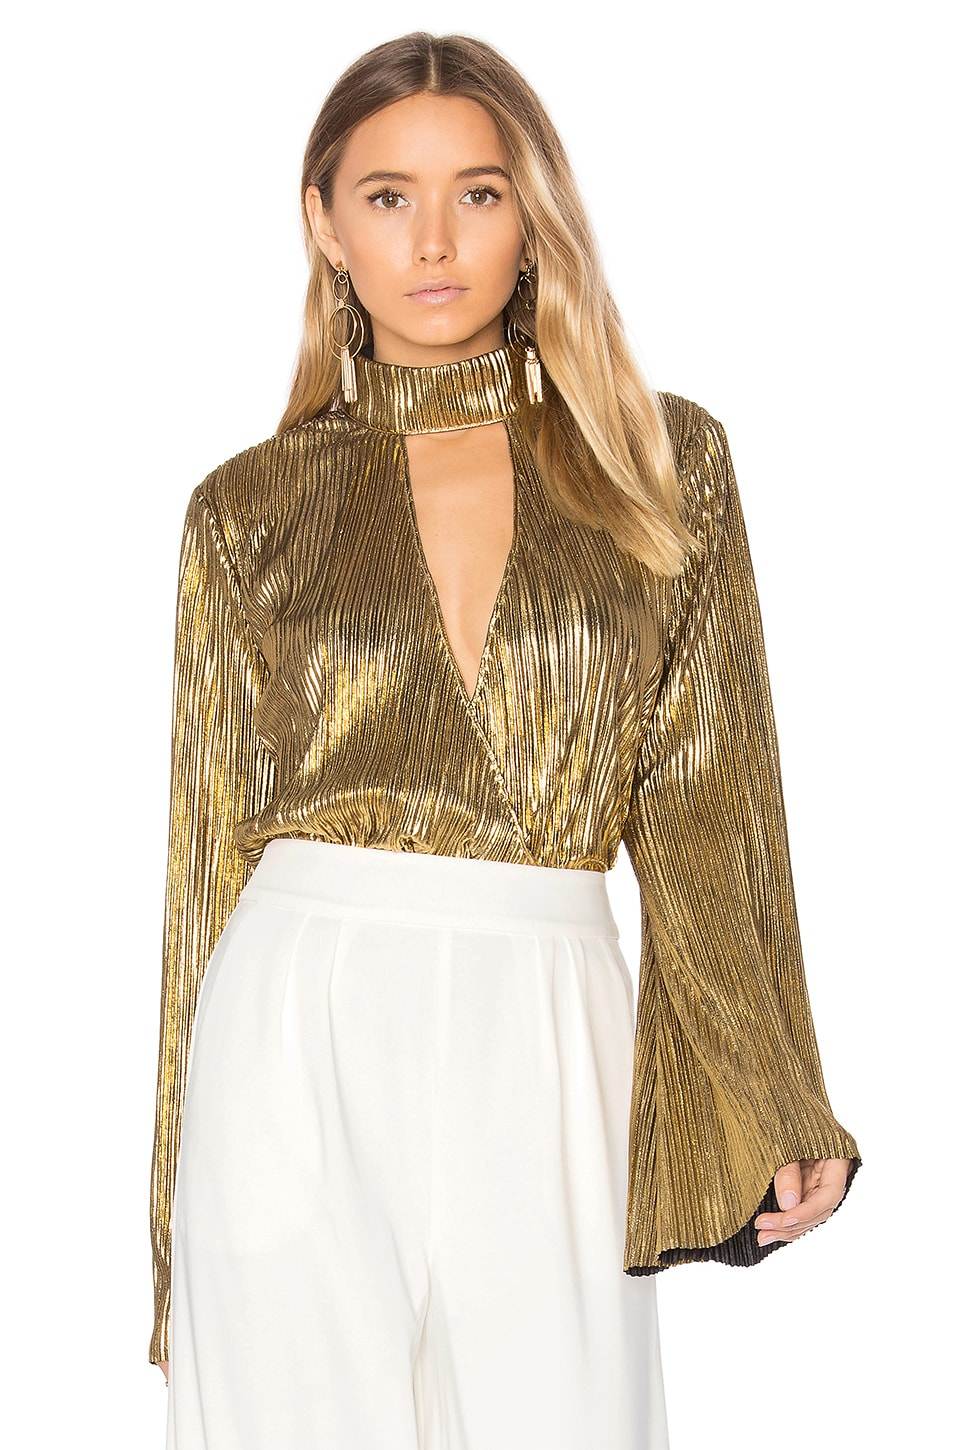 House of Harlow 1960 x REVOLVE Lynn Blouse in Gold